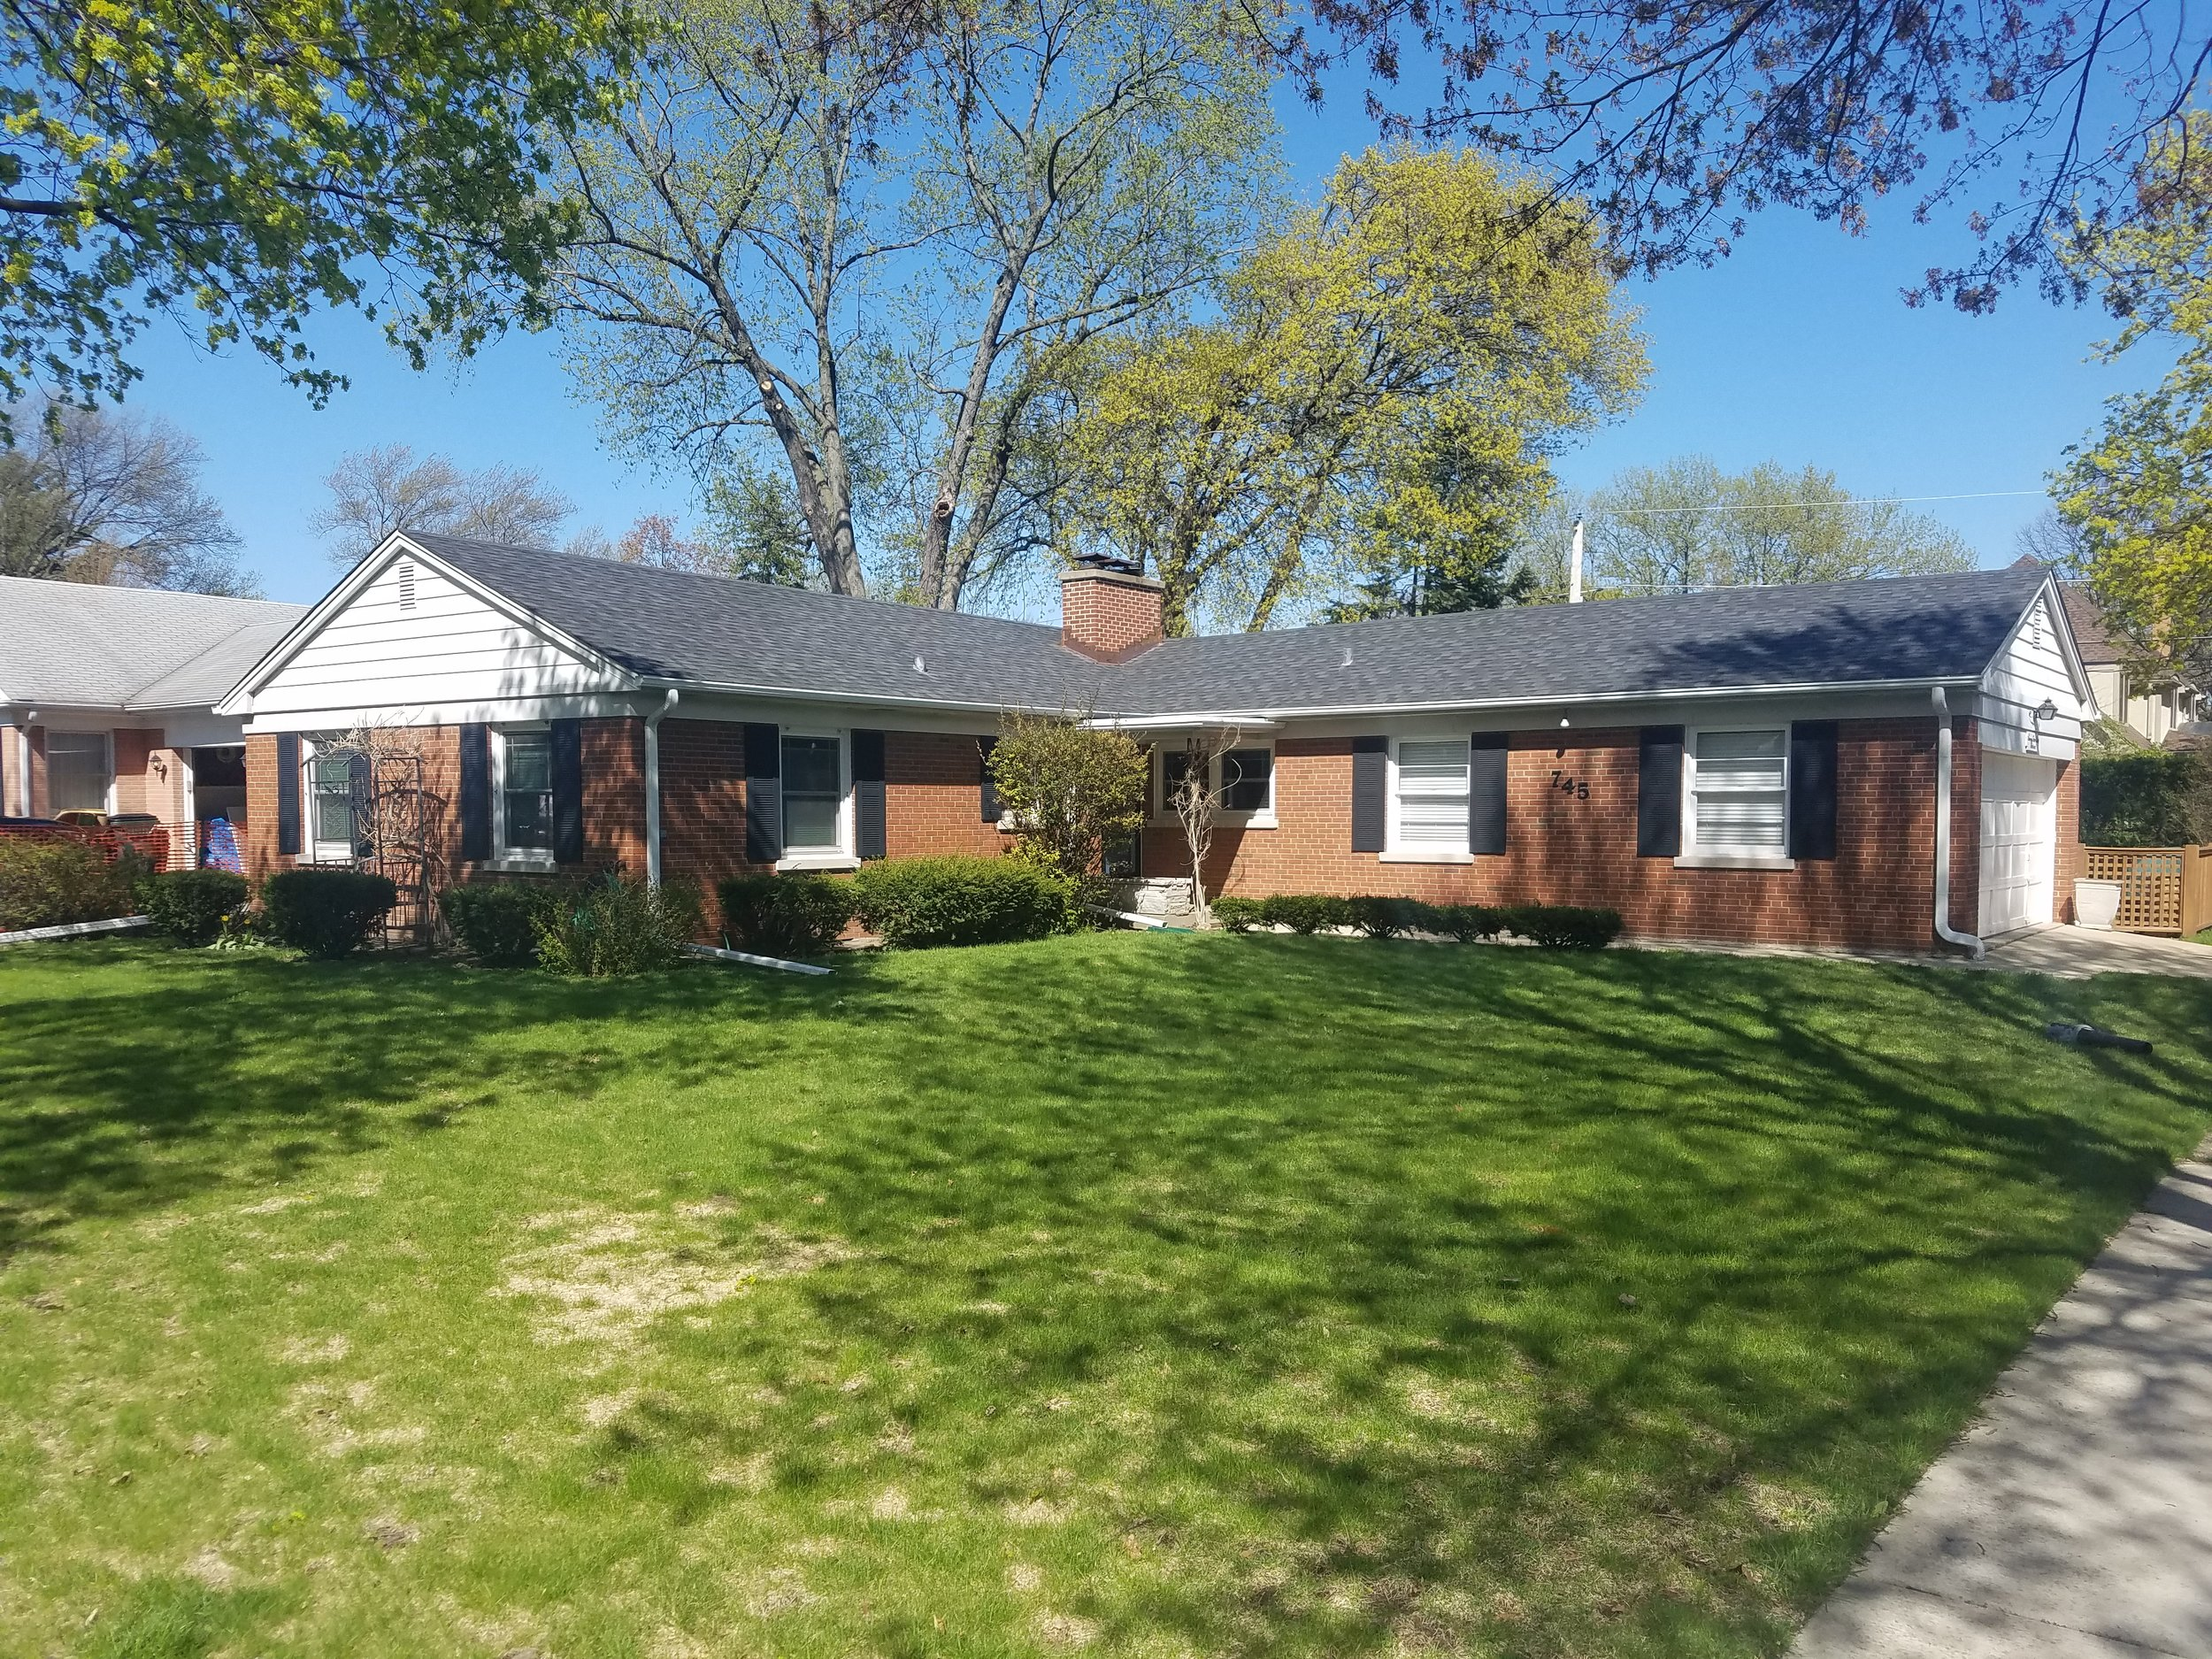 Feze Roofing - After Photo - Project Location: Arlington Heights, IL